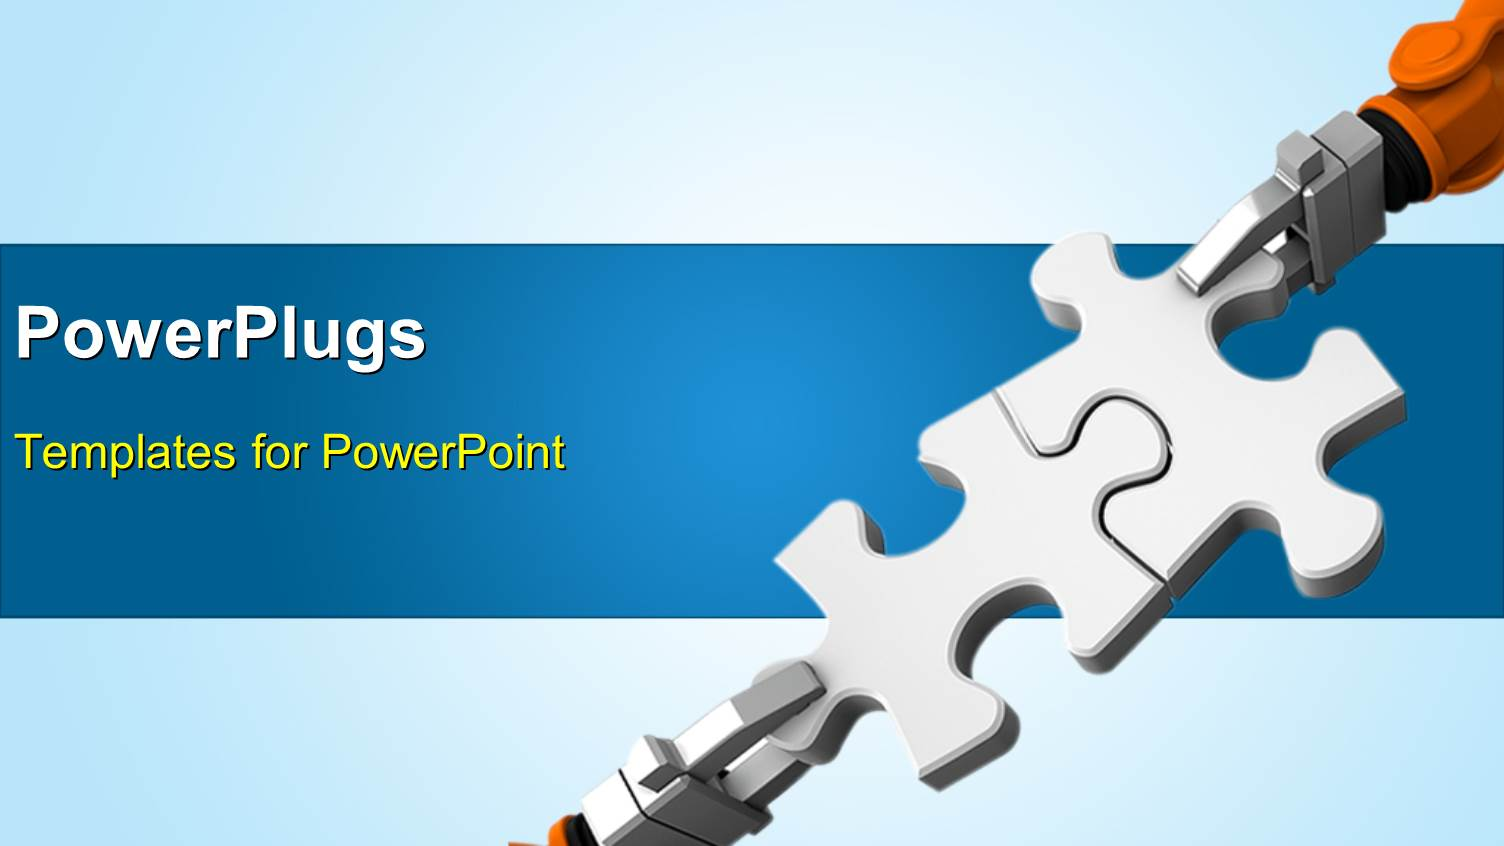 5000 automation powerpoint templates w automation themed backgrounds amazing ppt theme consisting of robot holding jigsaw puzzle piece on a blue background toneelgroepblik Choice Image